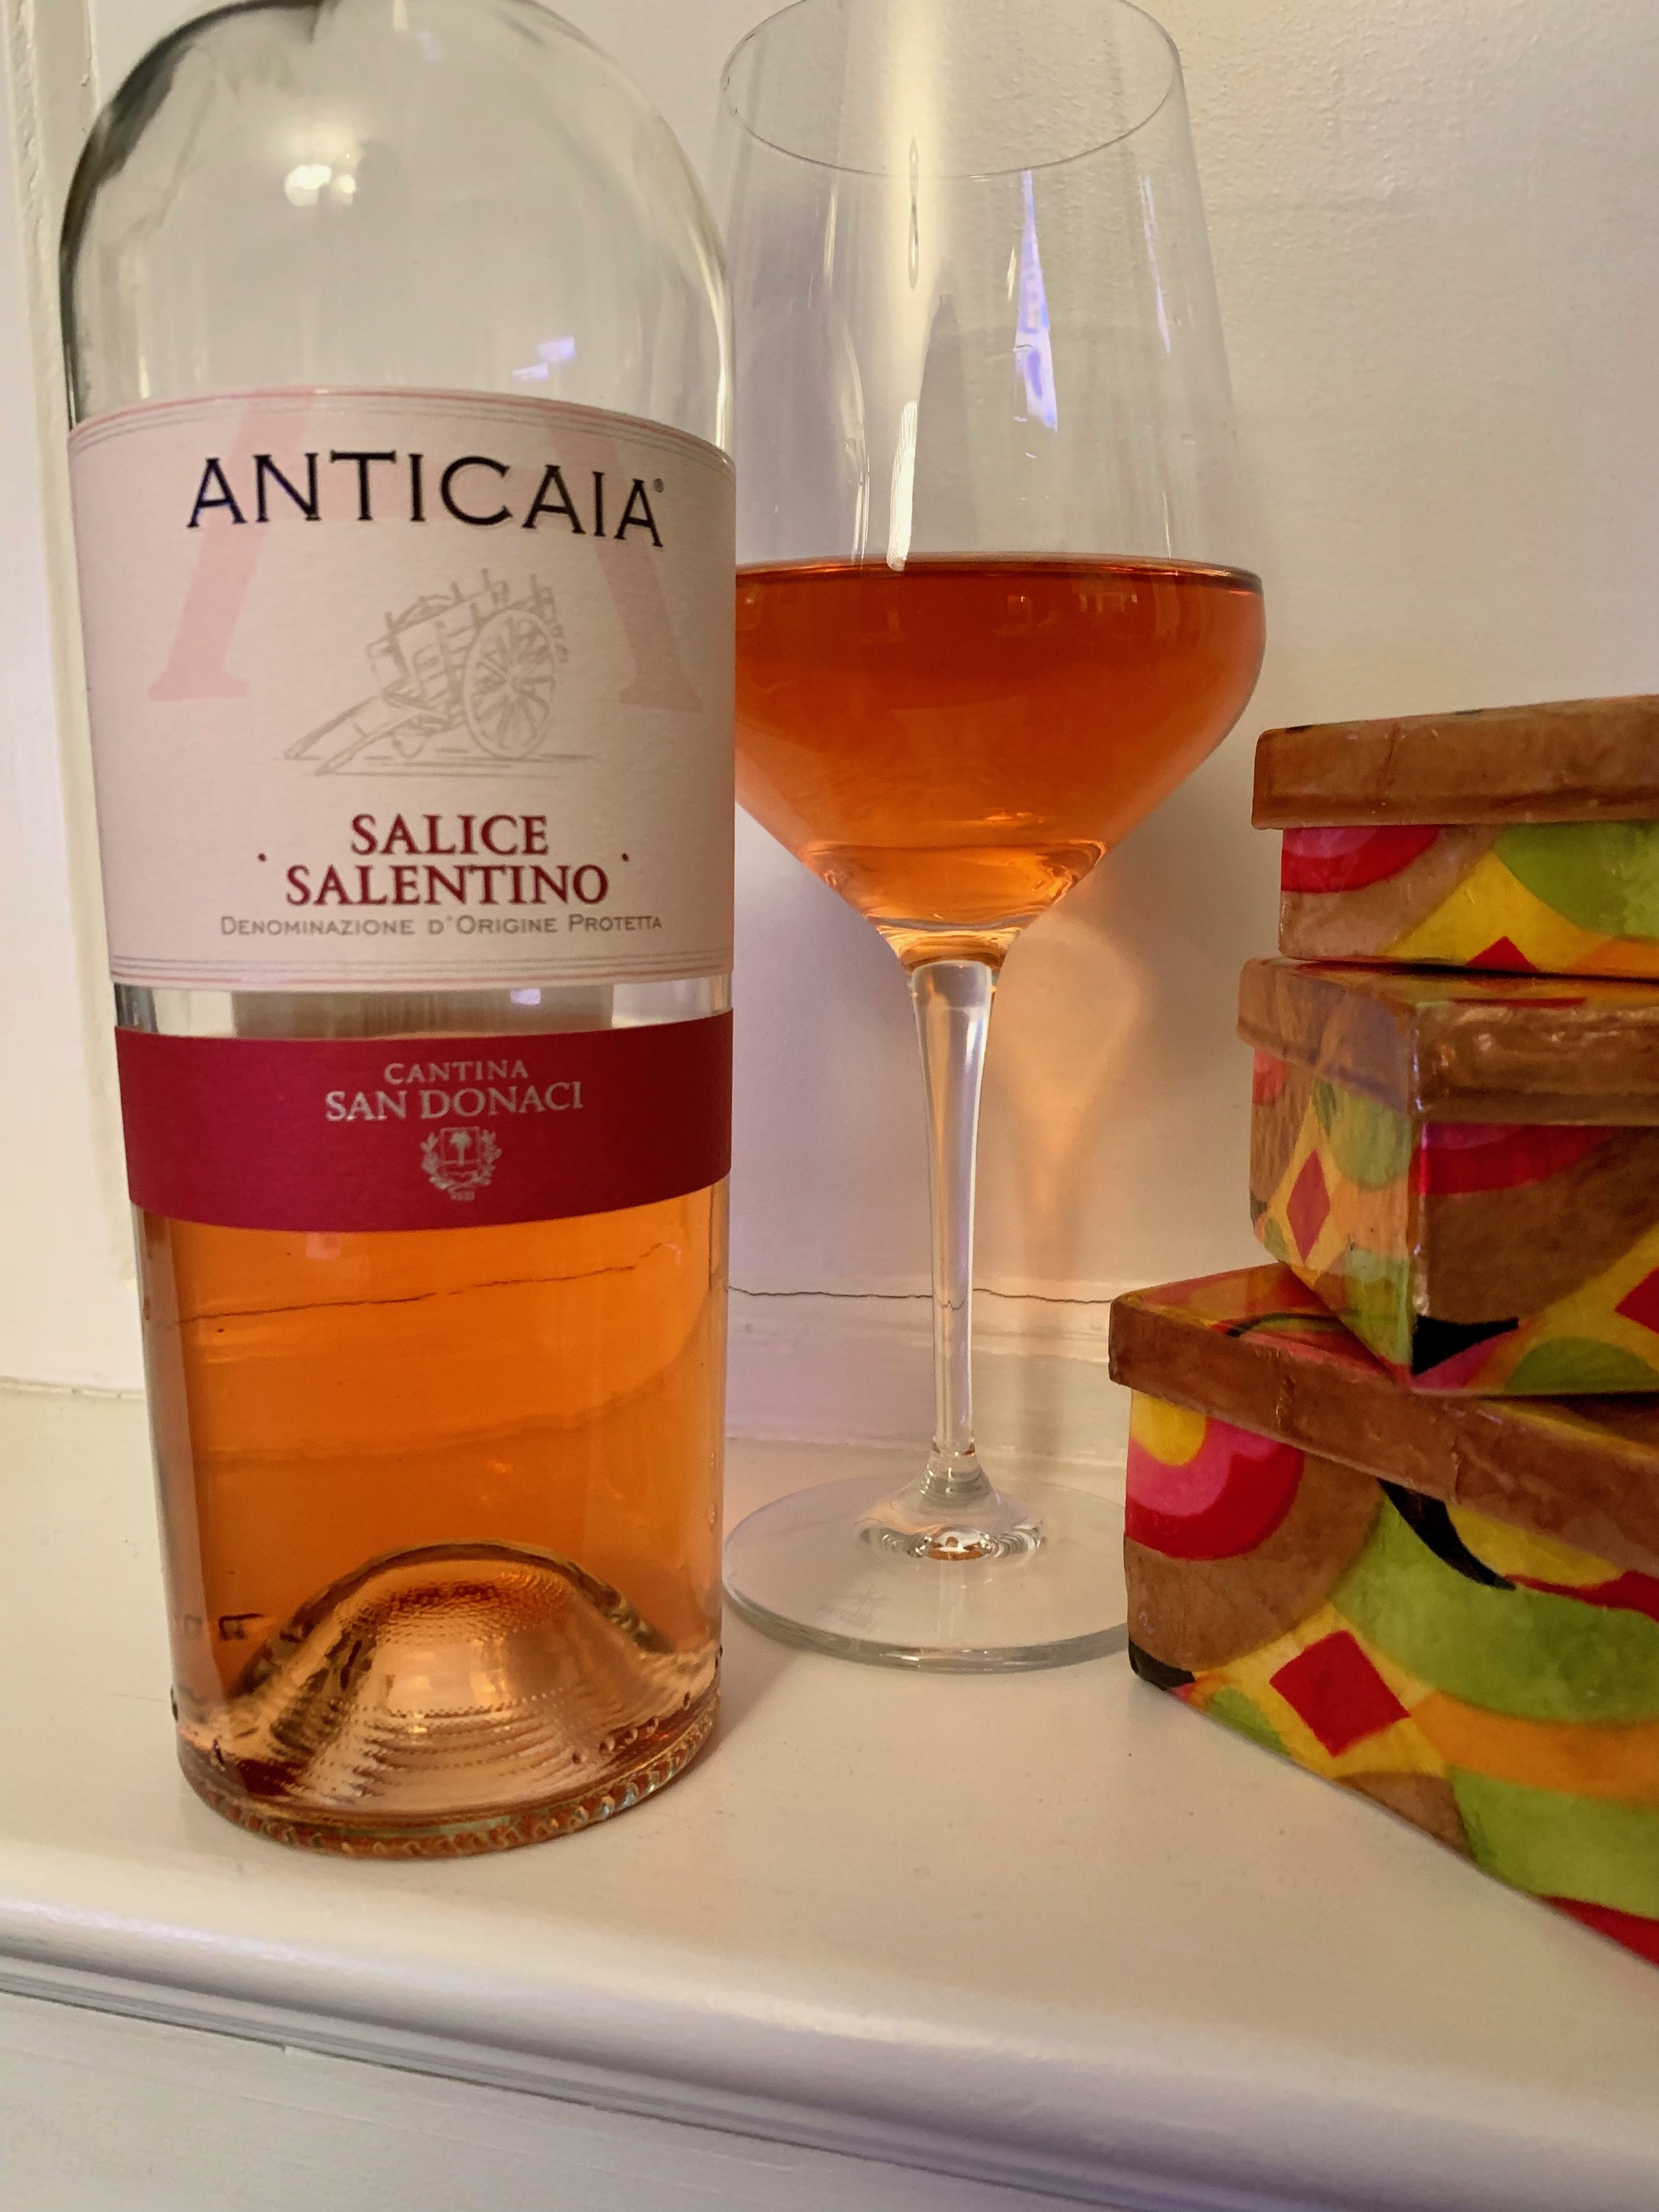 As its color suggests, the Anticaia Rosato from    Cantina San Donaci    is full of fresh and intense fruit aromas and flavors ( a little too much like cherry cough syrup): strawberry, cherry, pomegranate, and plum.